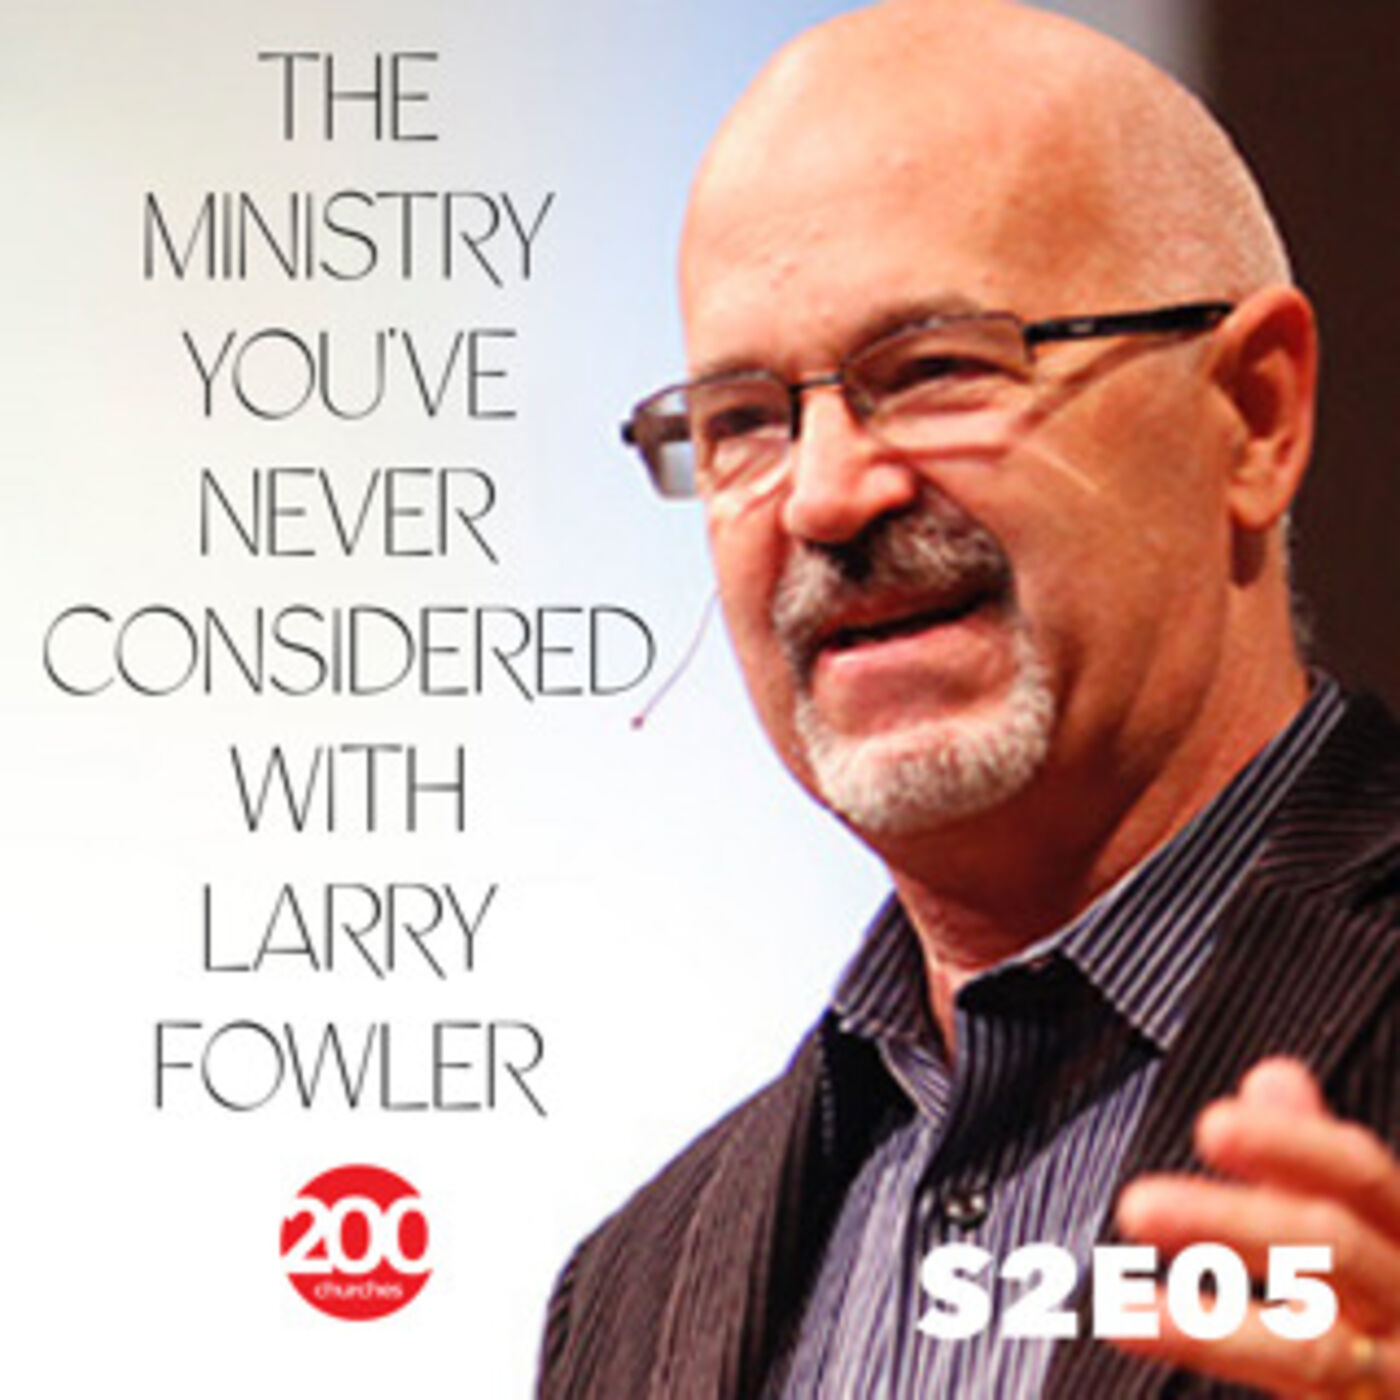 Season 2 Episode 05 - The Ministry You've Never Considered with Larry Fowler